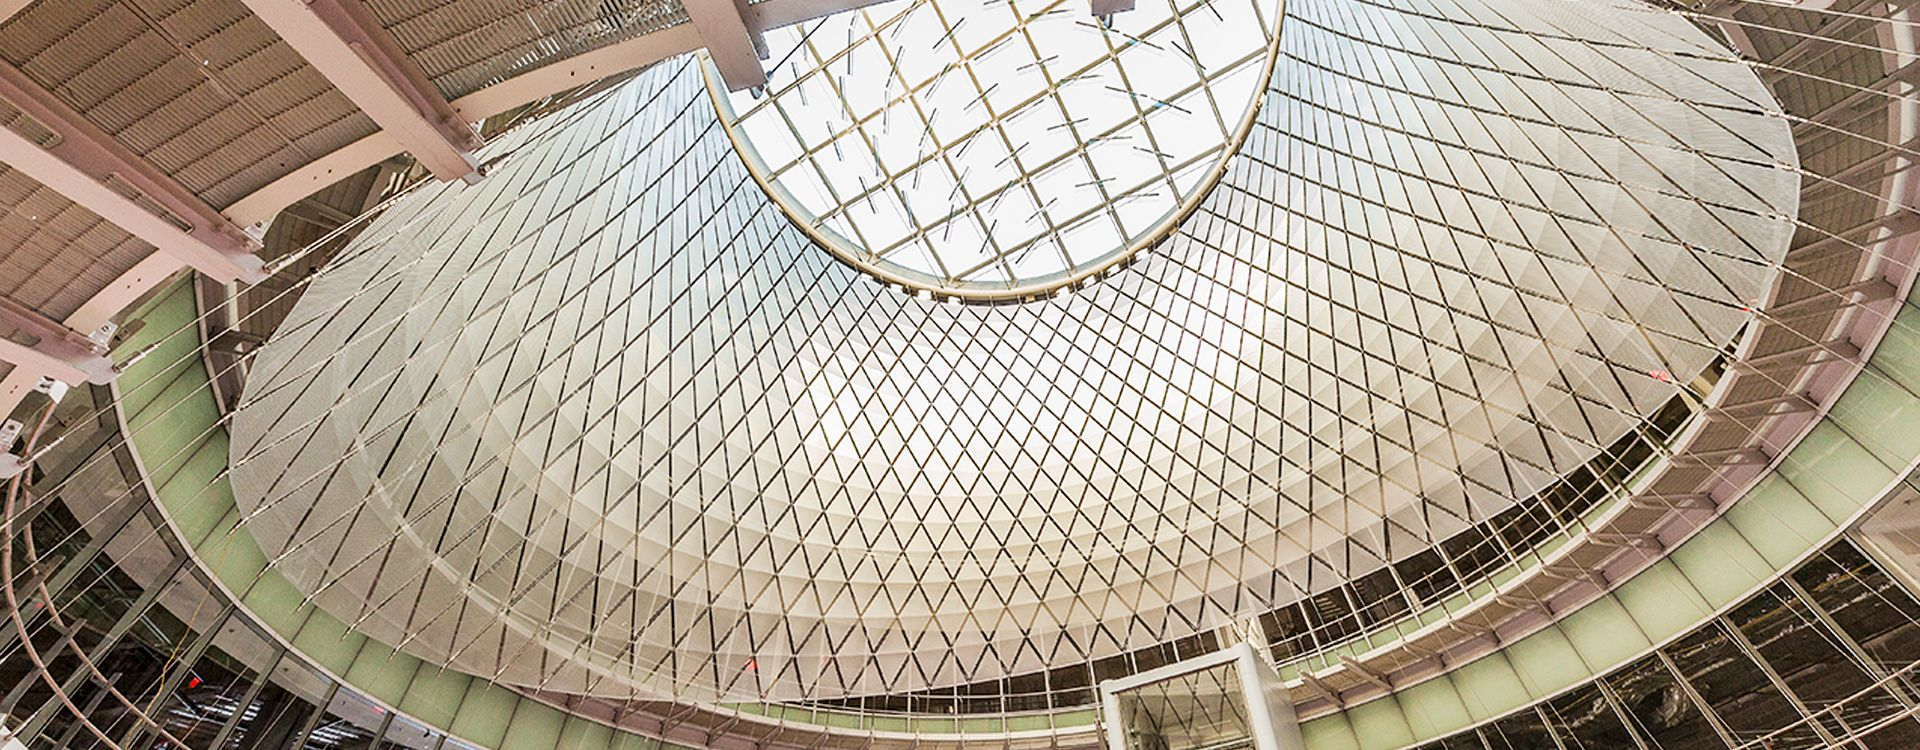 bnr-fulton-center-spectacular-new-transit-center-opens-in-manhattan